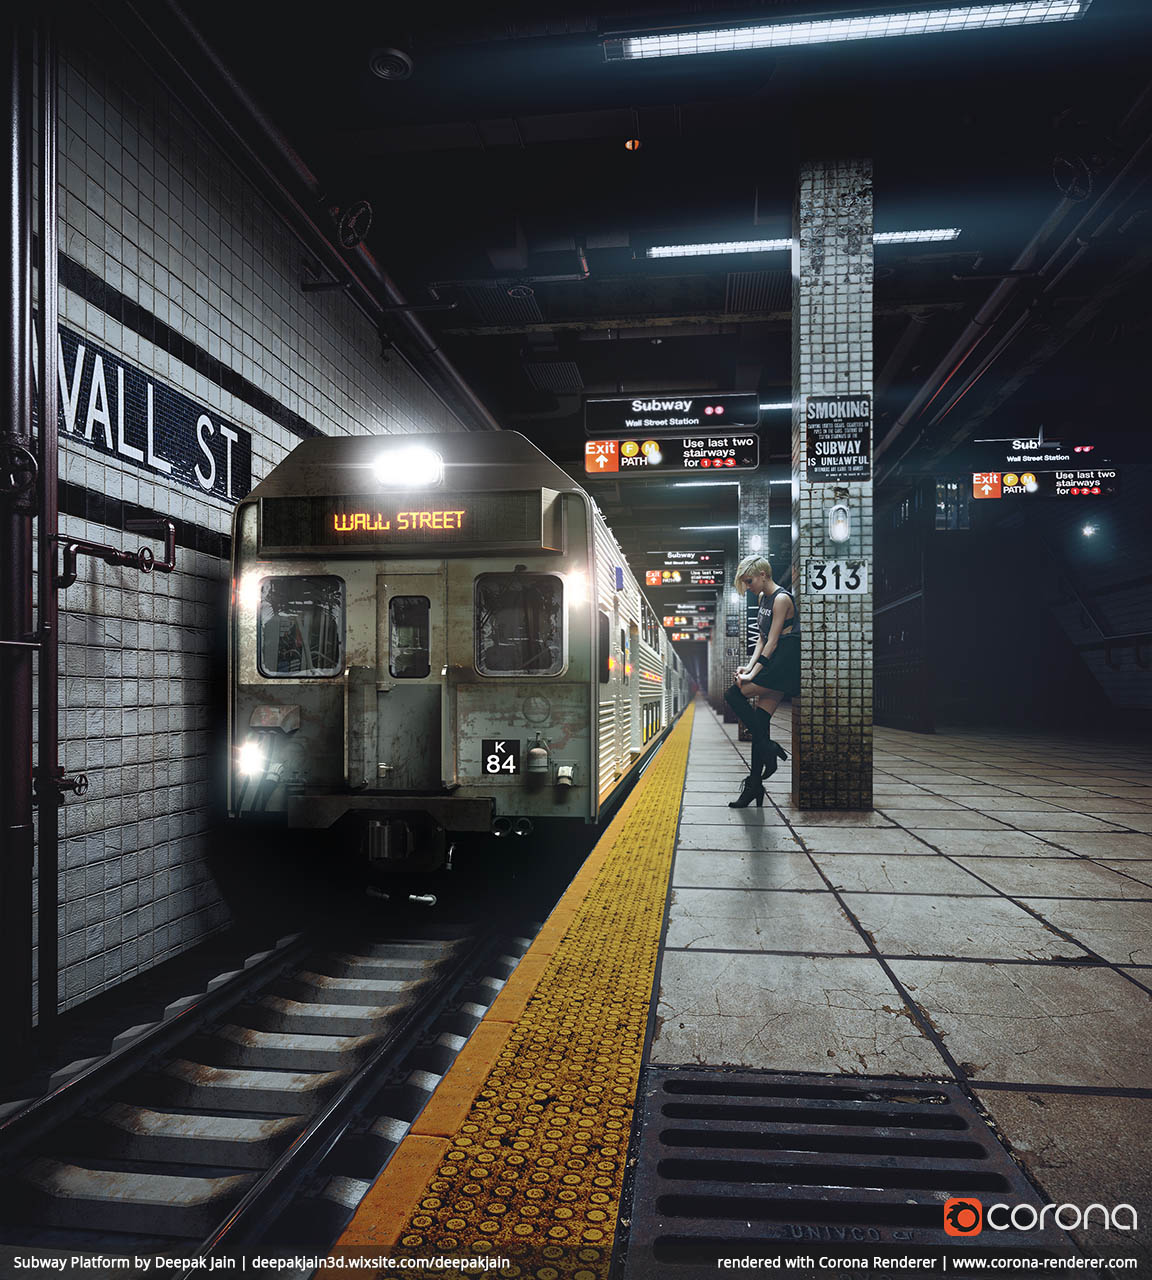 Subway Platform by Deepak Jain